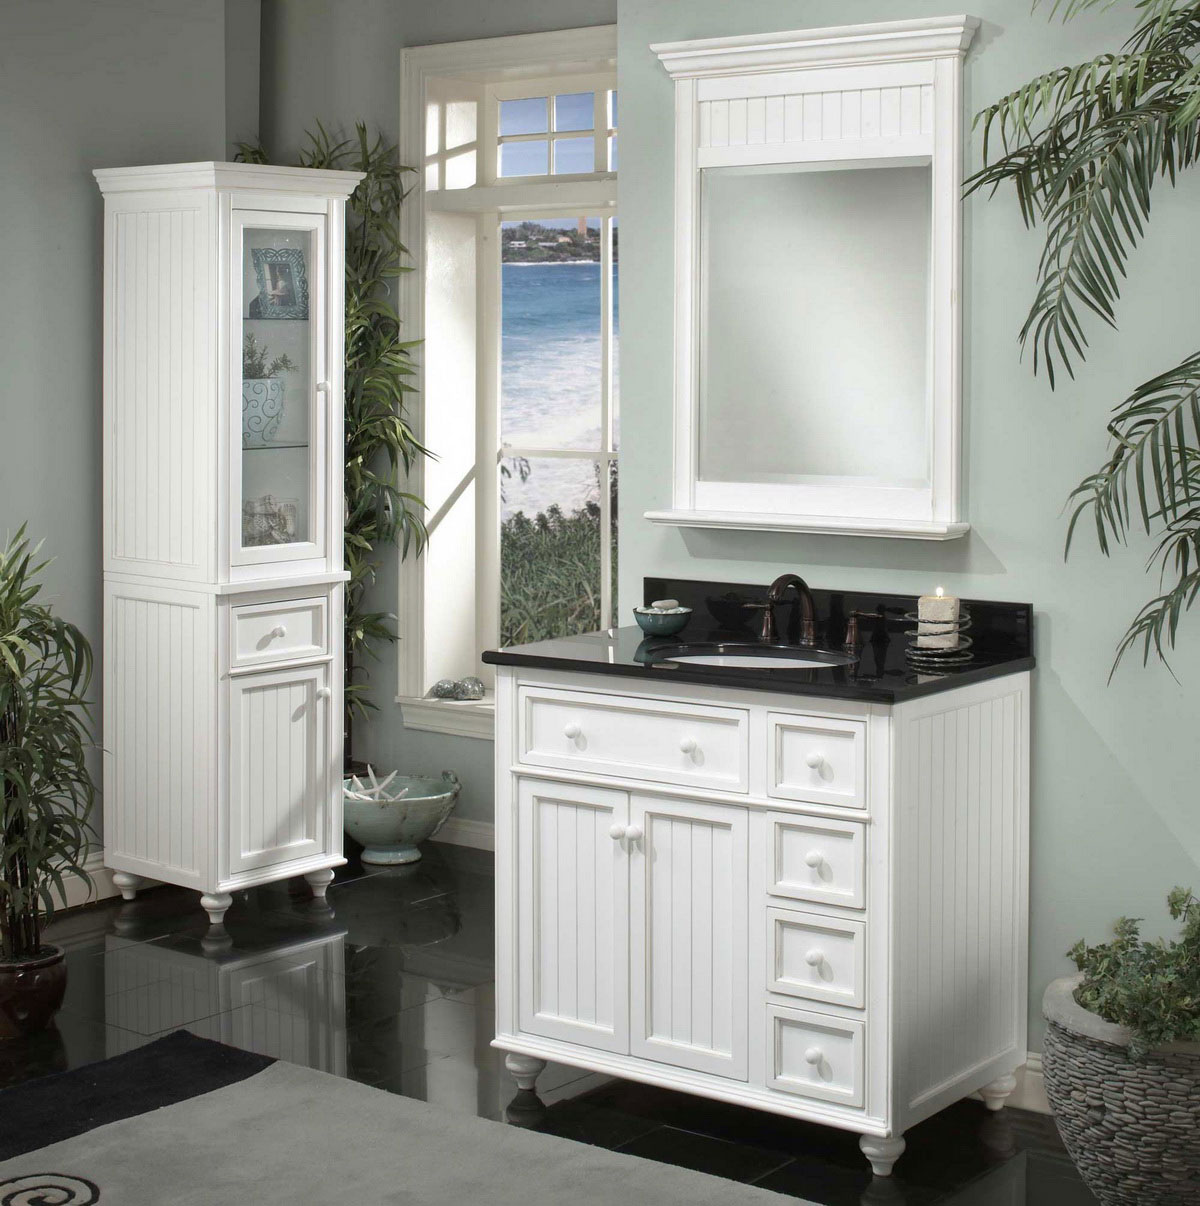 best bathroom cabinets ideas 8 - Bathroom Cabinets Ideas